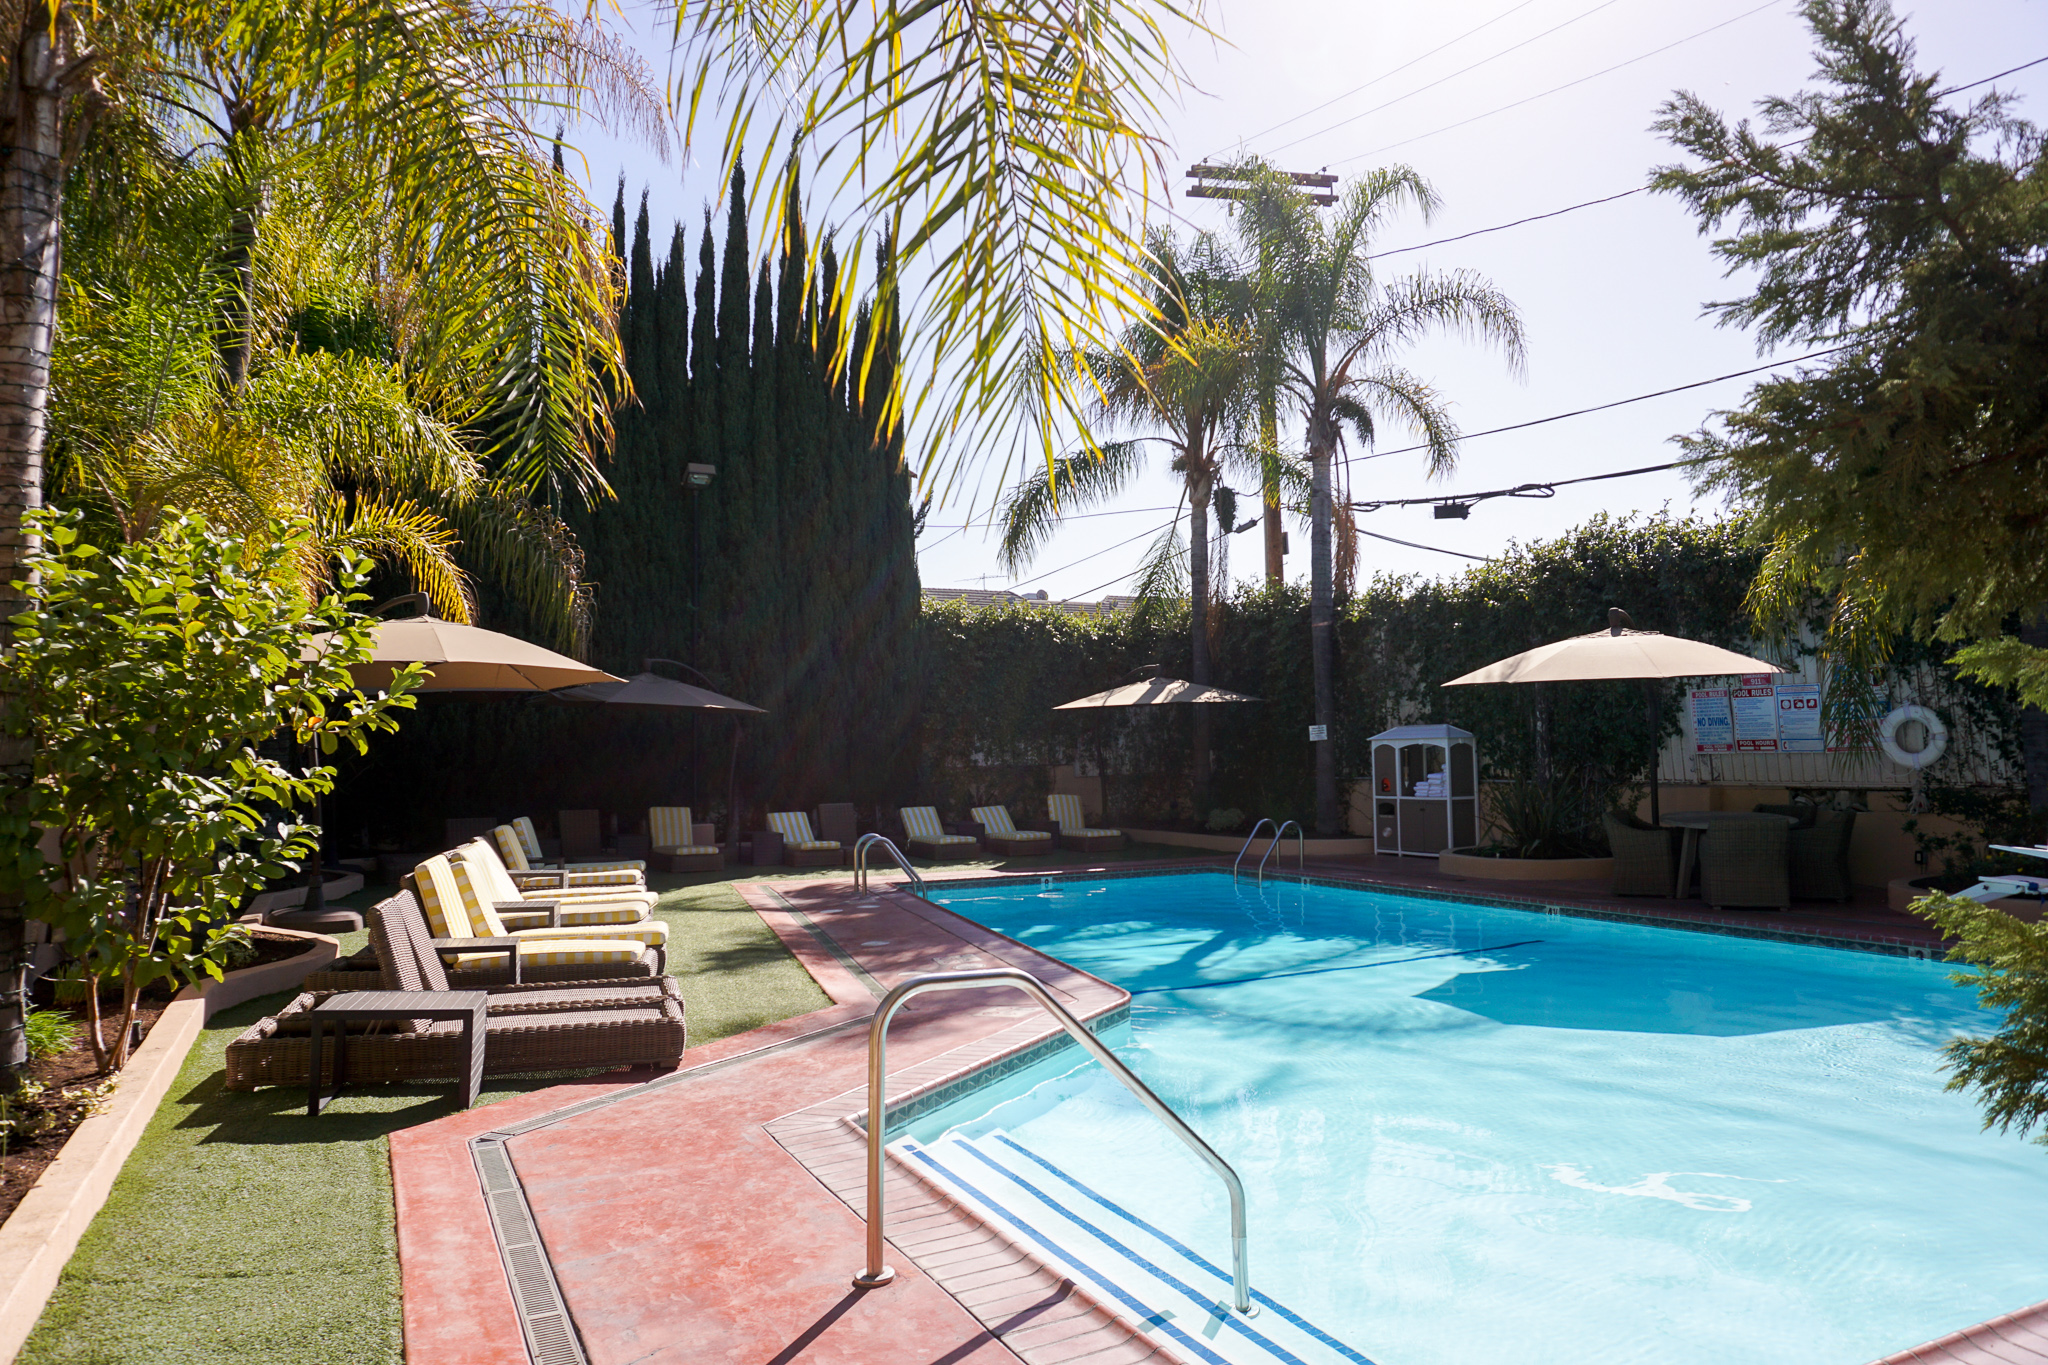 Hollywood Hotel Hollywood Review Hotelreview